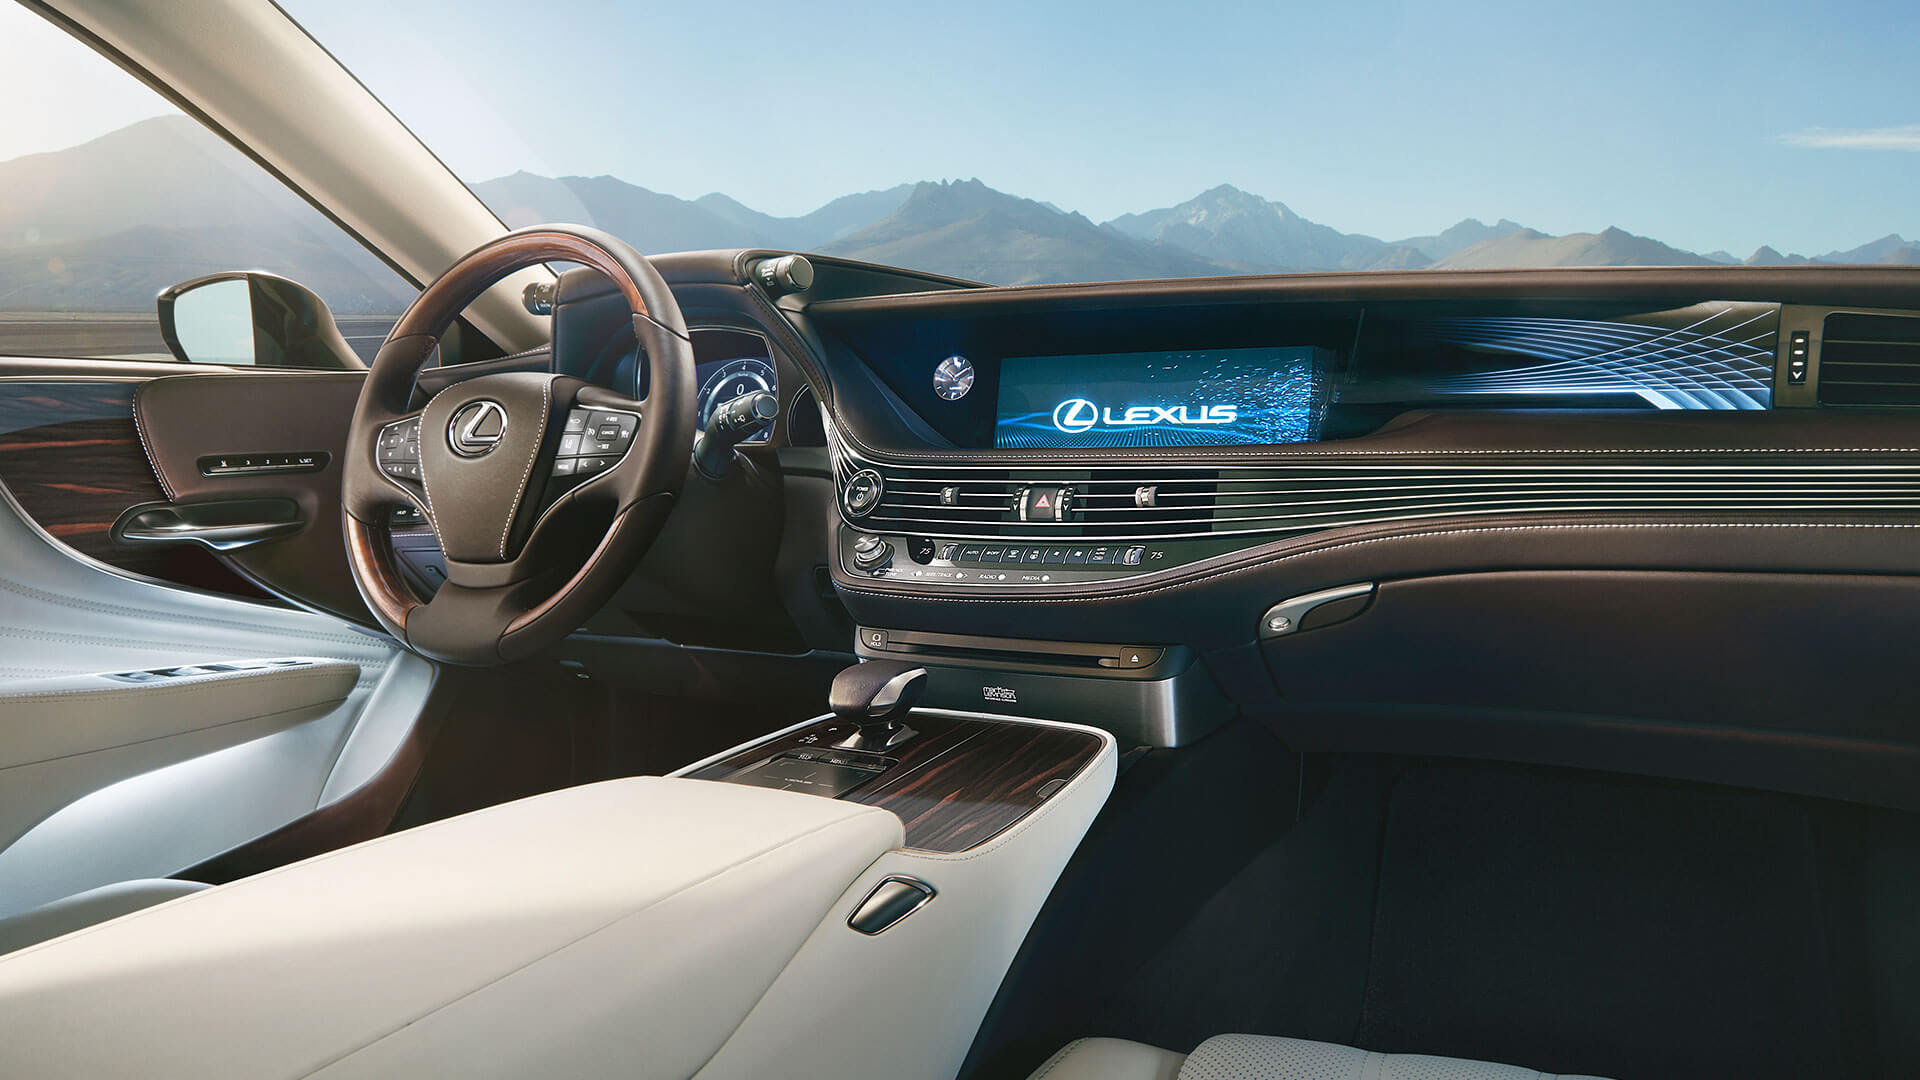 2018 lexus ls gallery 002 interior